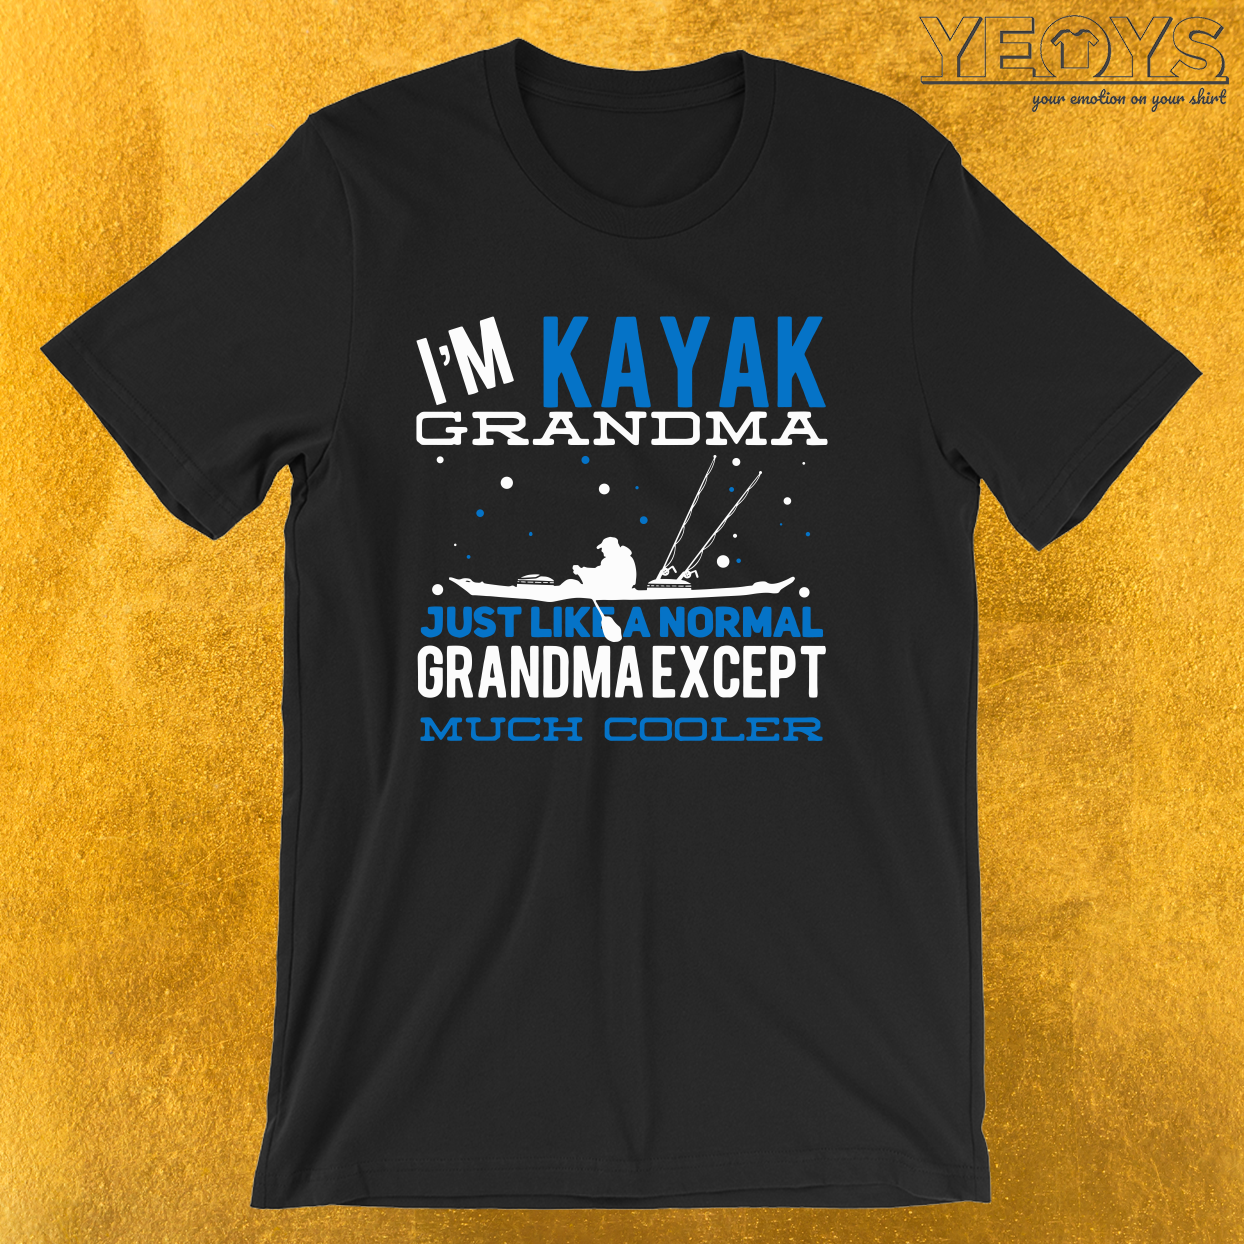 Kayak Grandma – Kayaking Tee